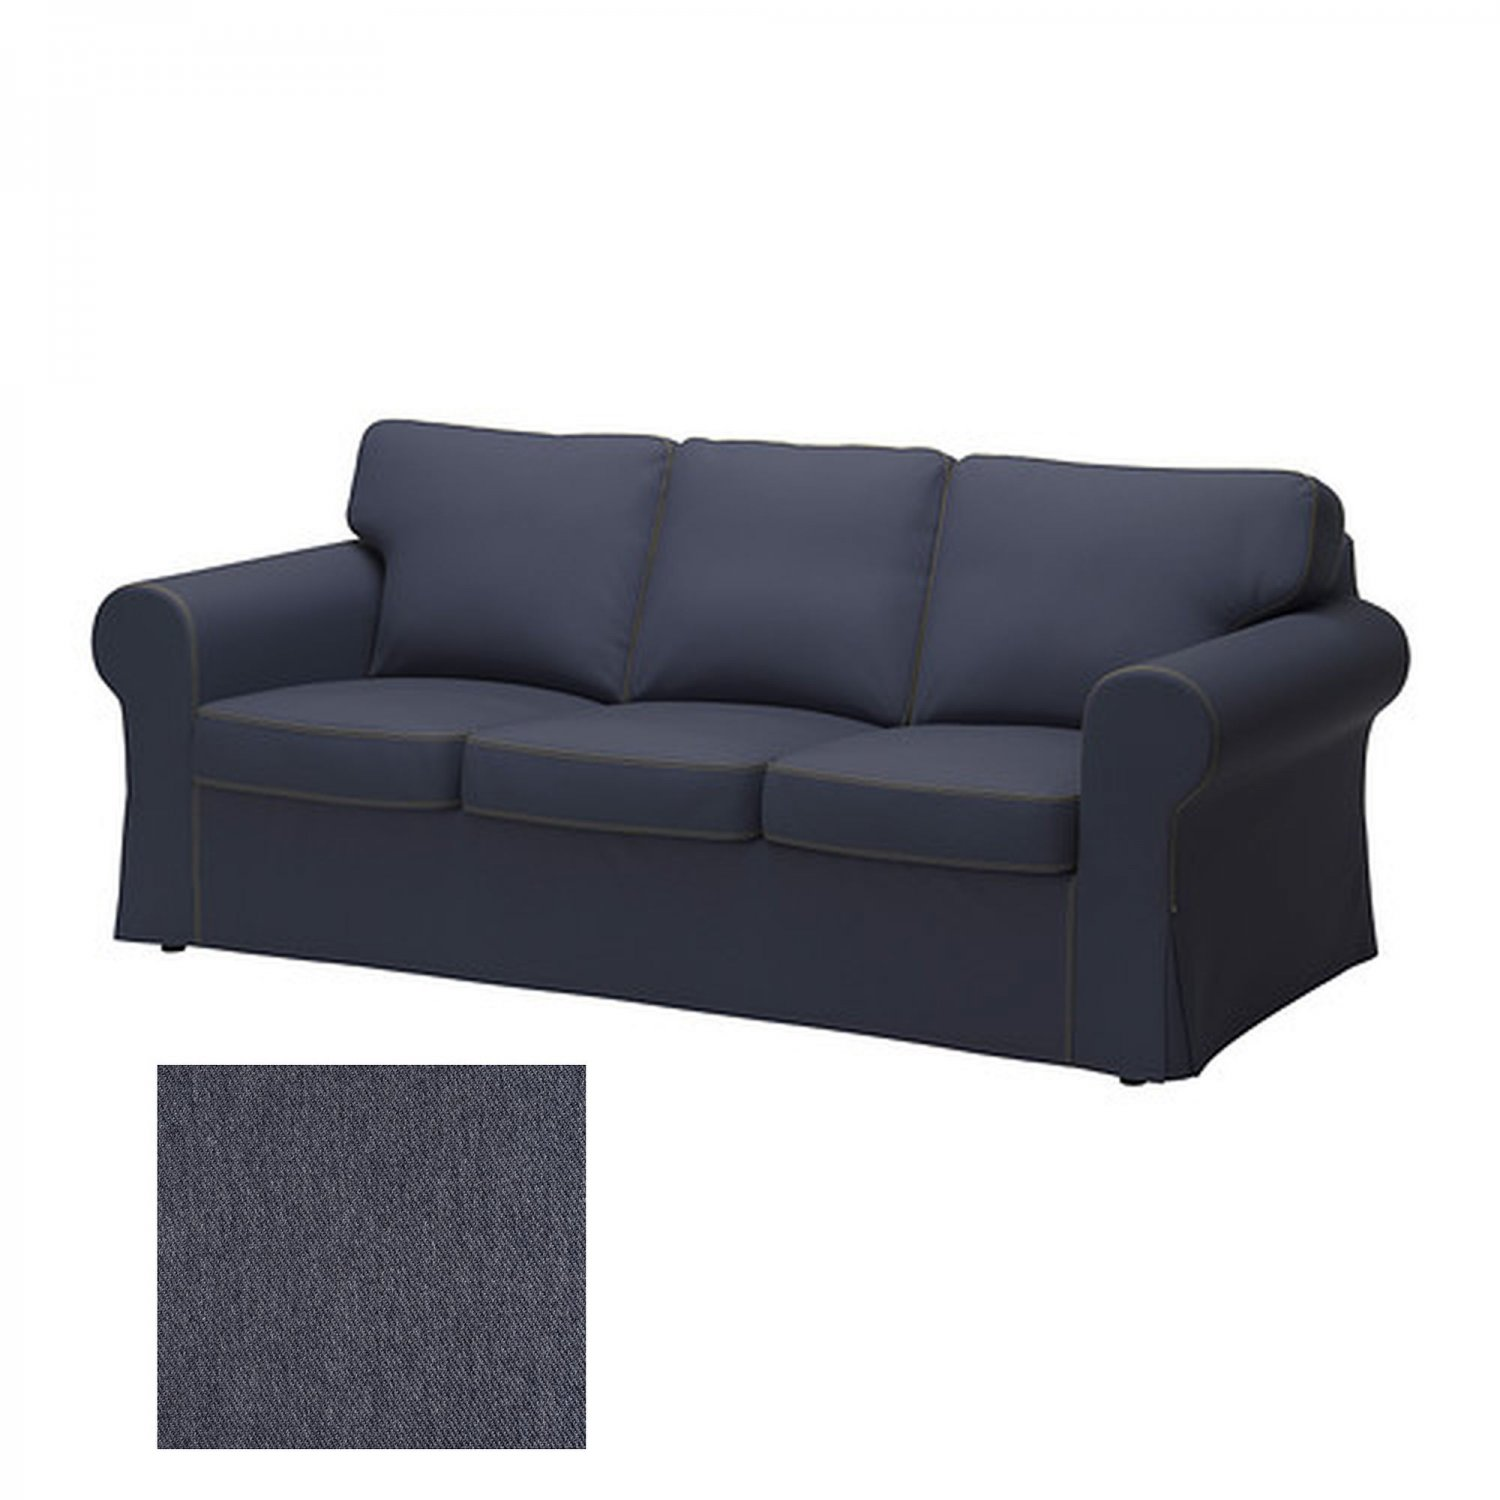 ikea ektorp 3 seat sofa slipcover cover jonsboda blue last one. Black Bedroom Furniture Sets. Home Design Ideas